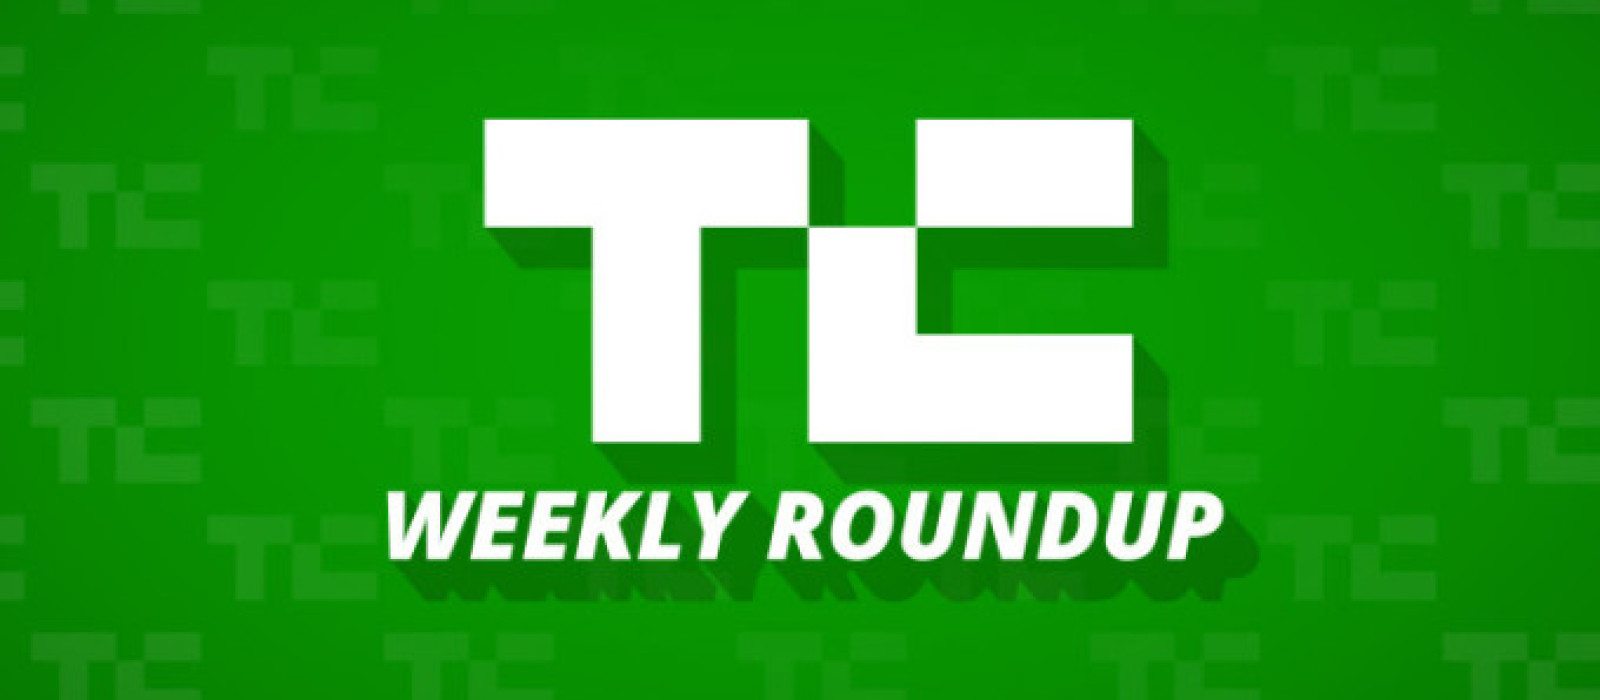 15 TechCrunch Stories You Don't Want To Miss This Week